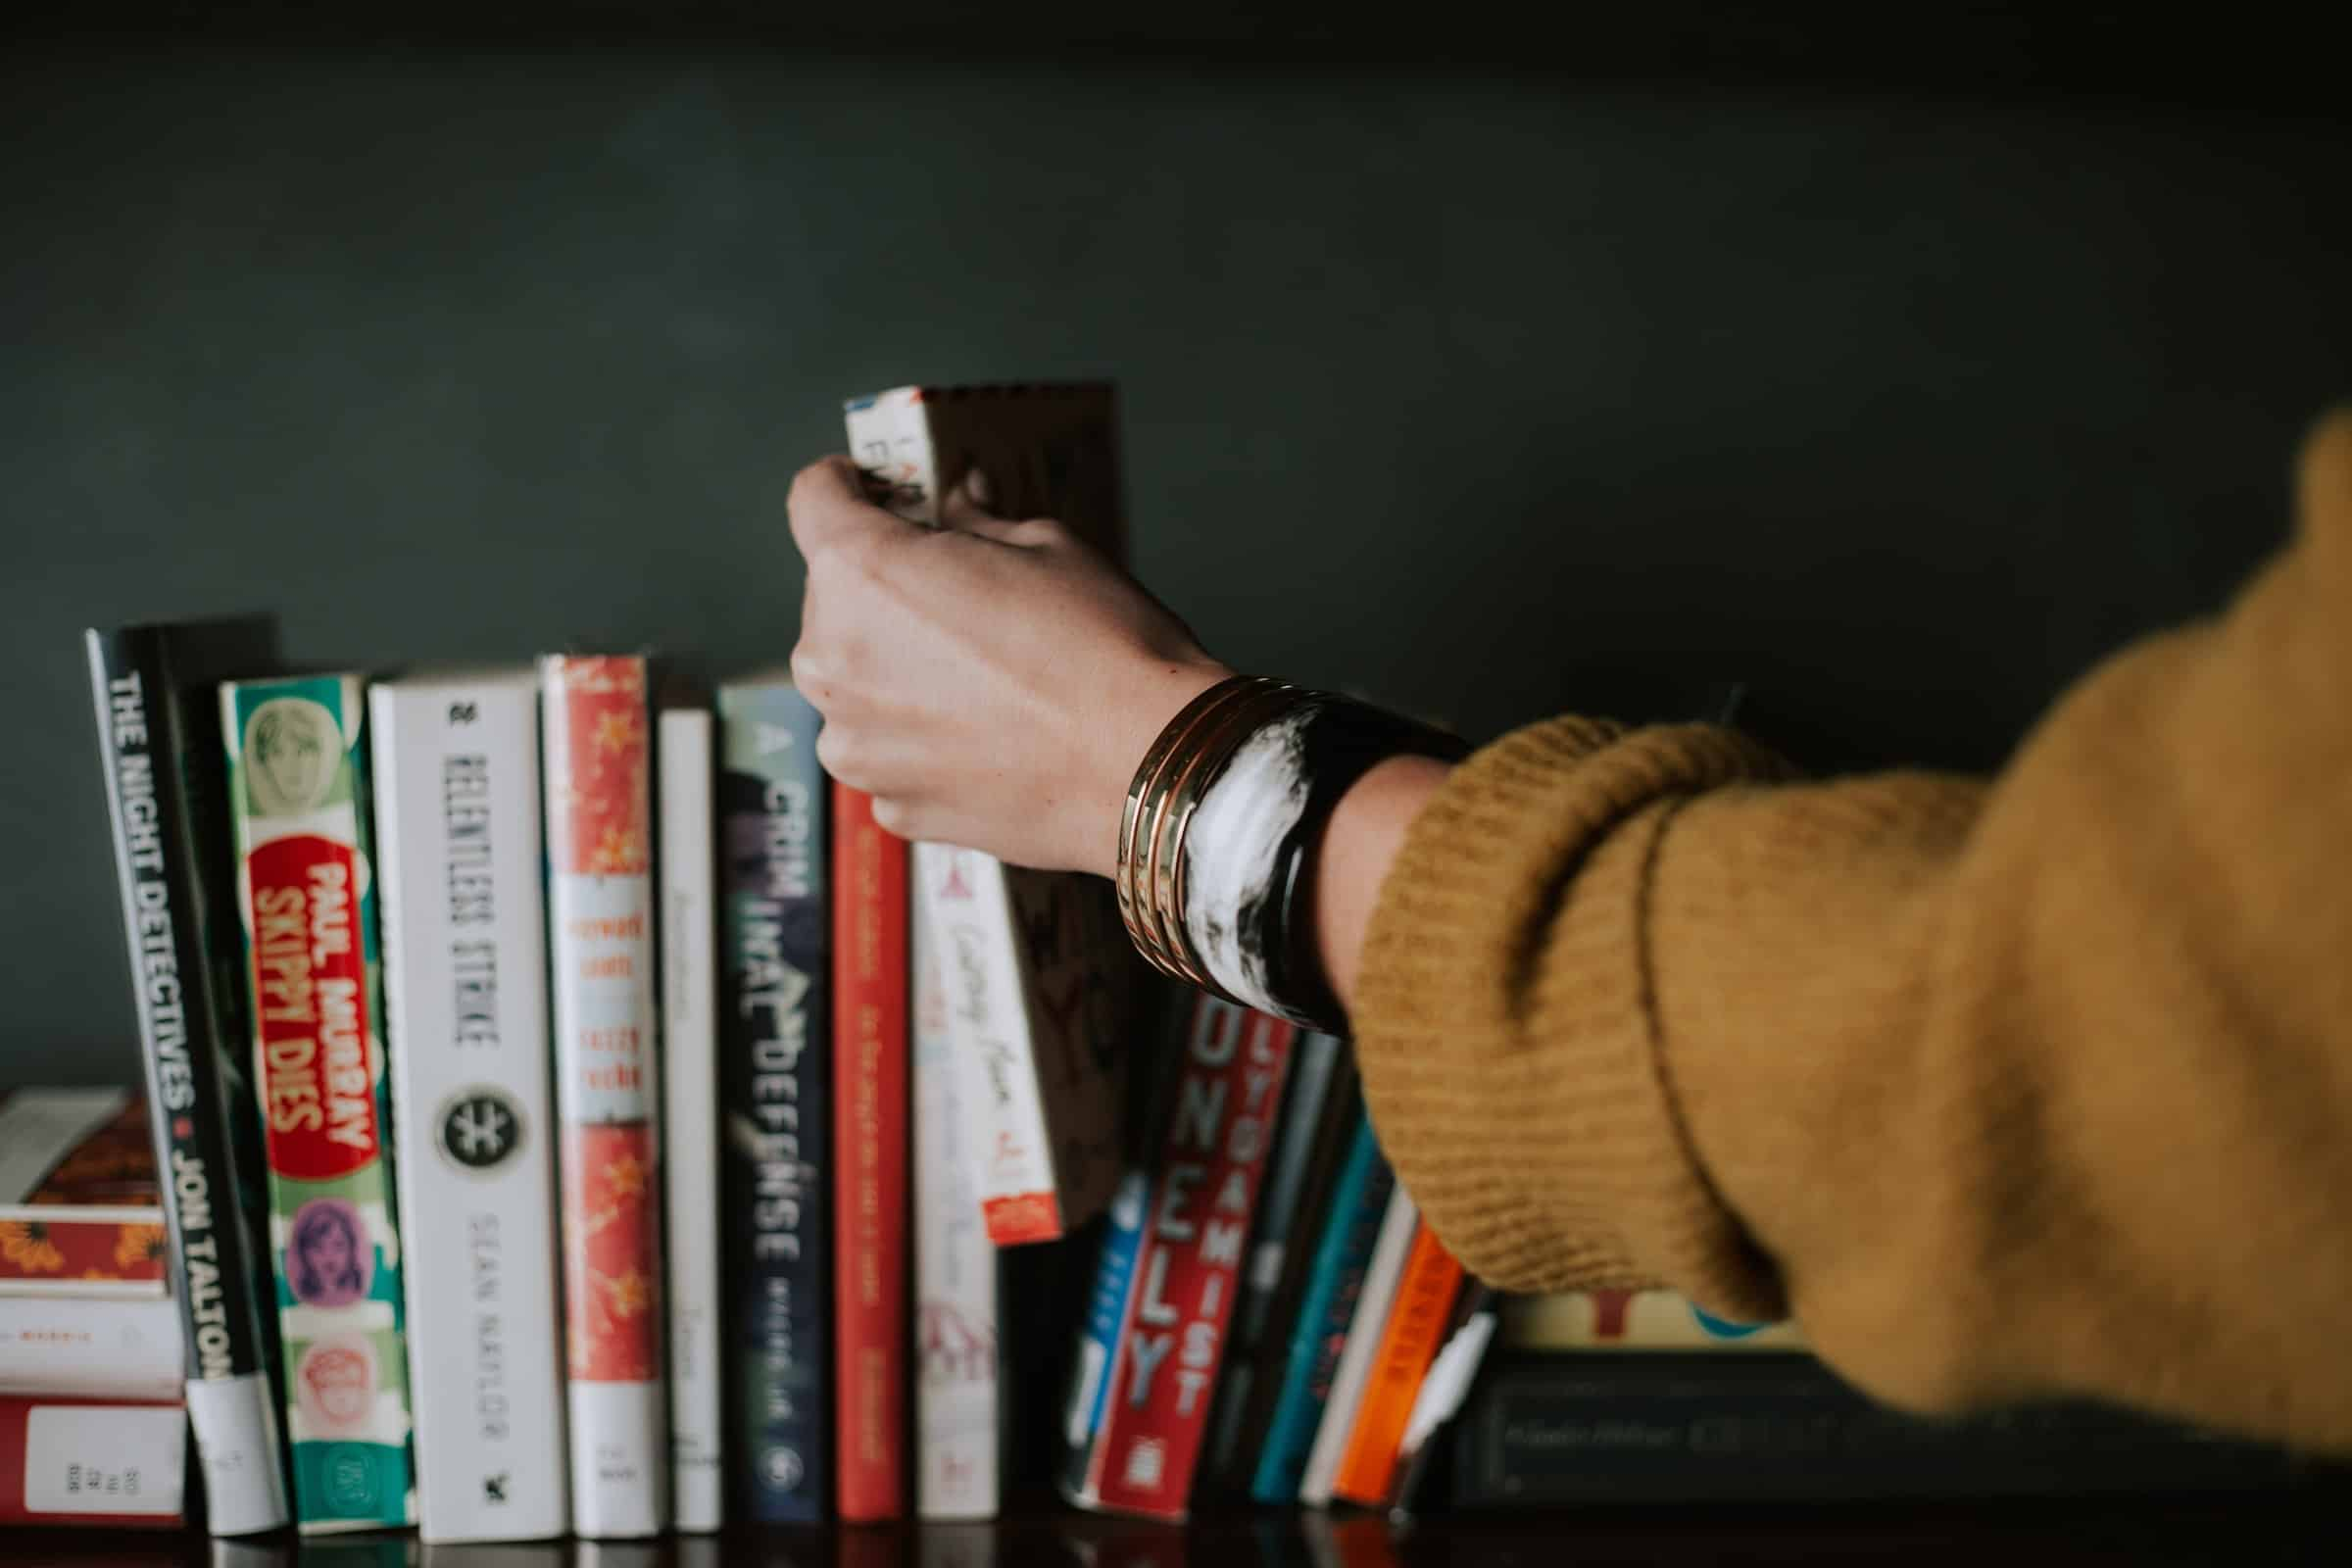 Top 5 best novels to make your summer great